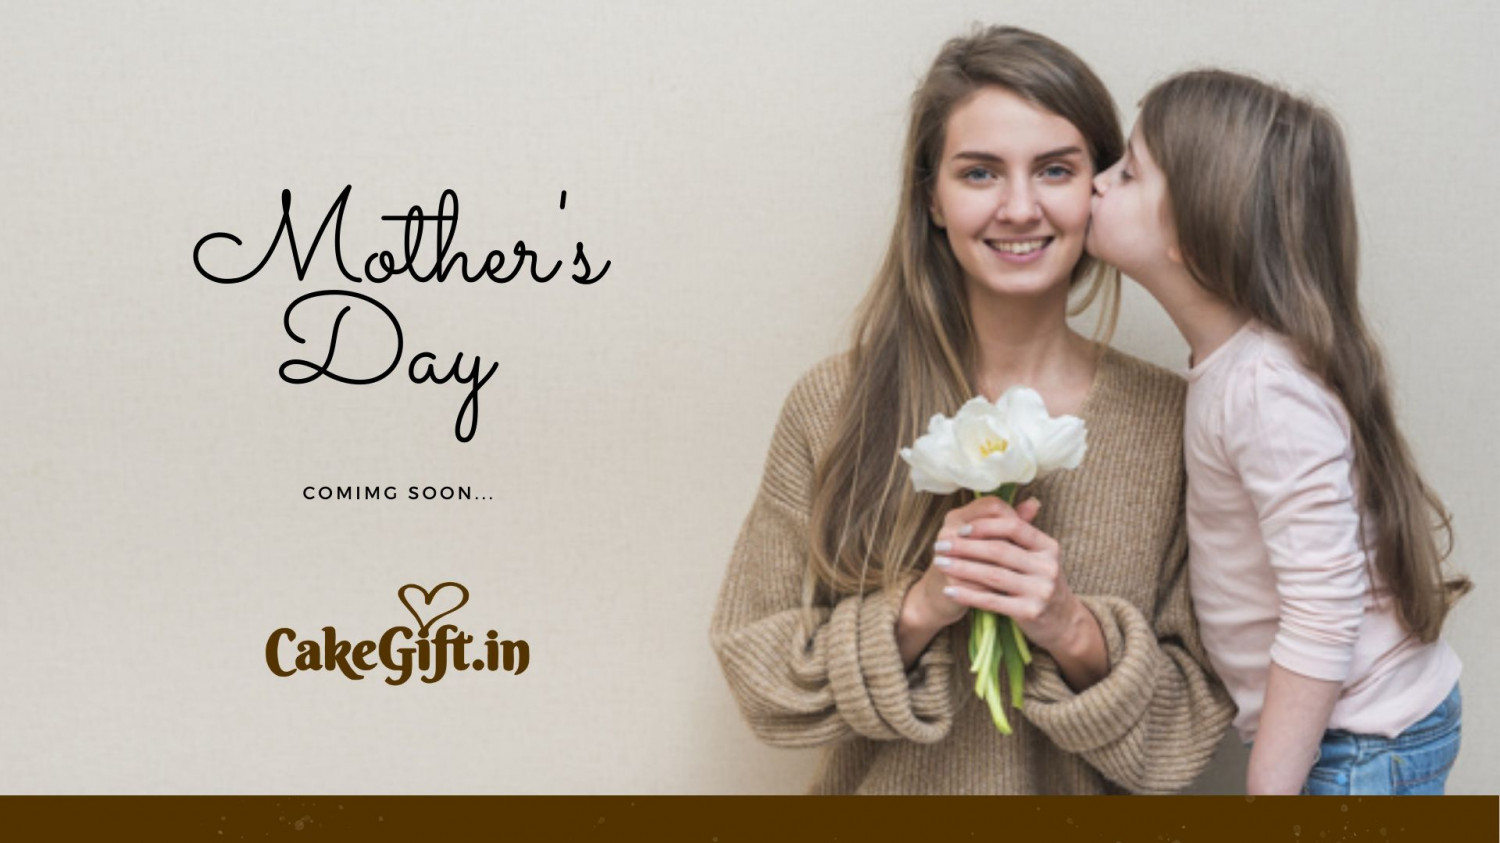 Mother's Day Gifts Infographic